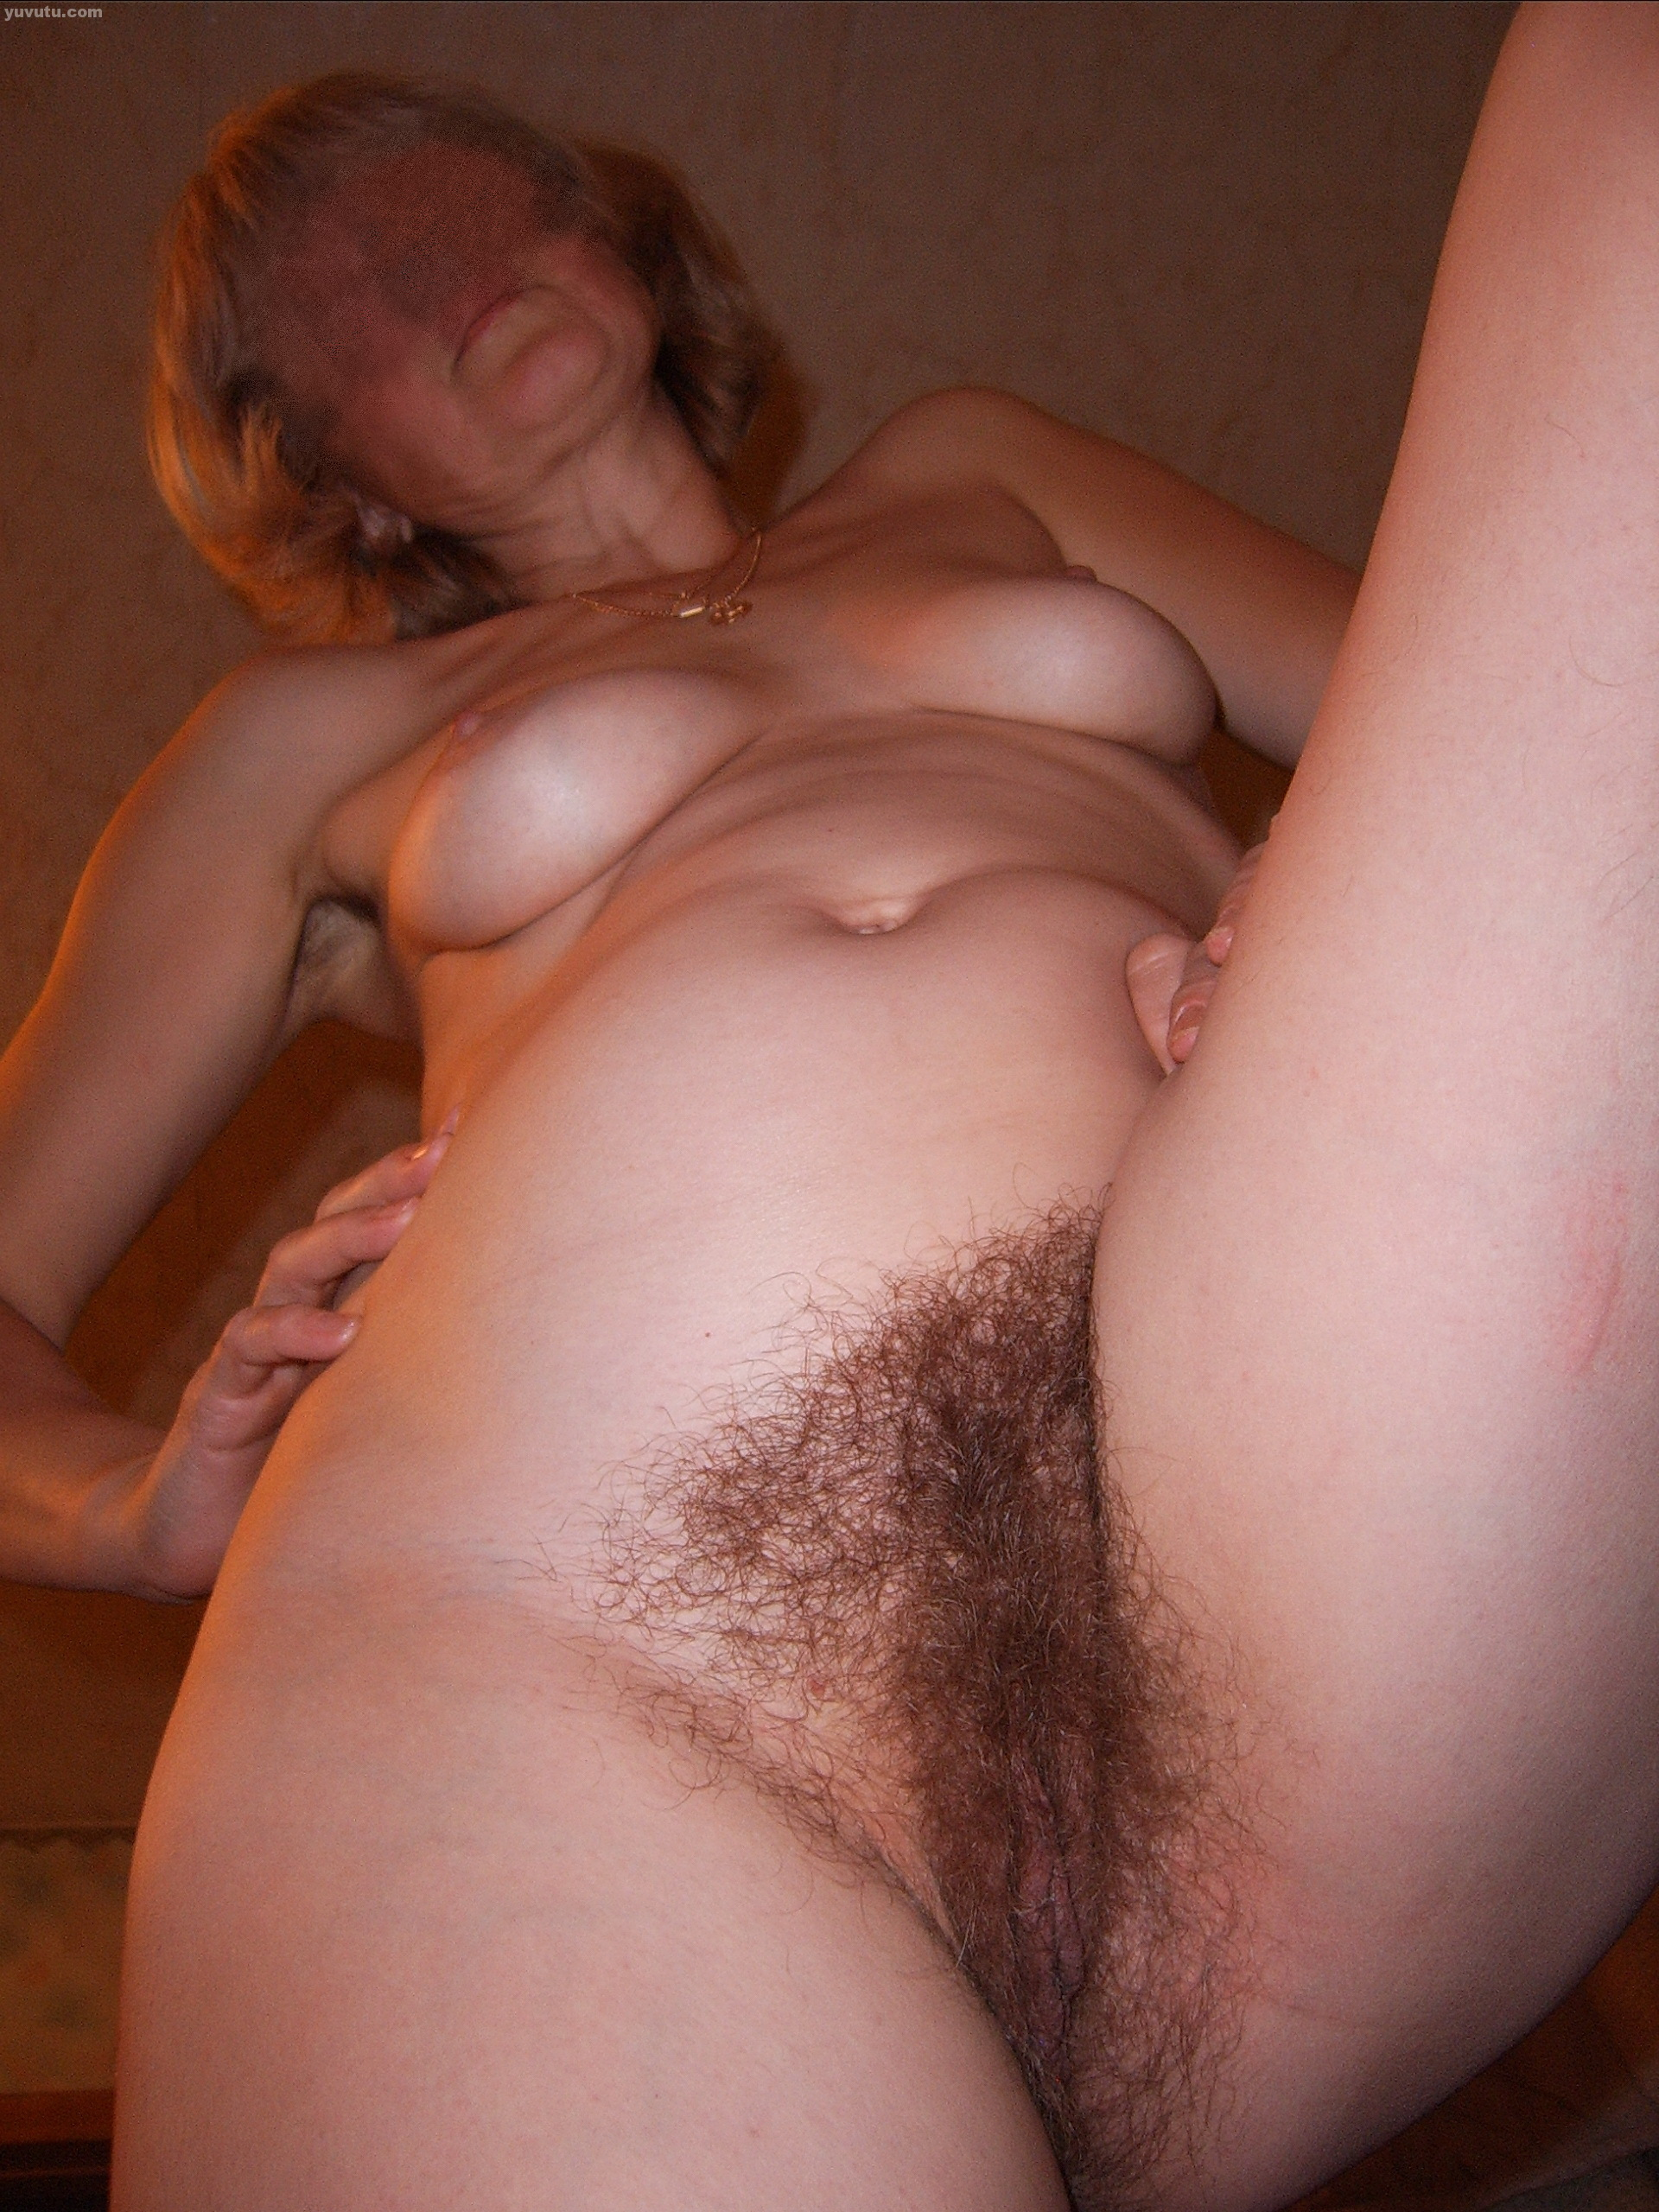 Incredible! What photos porn vagina hairy and pussy xxx like